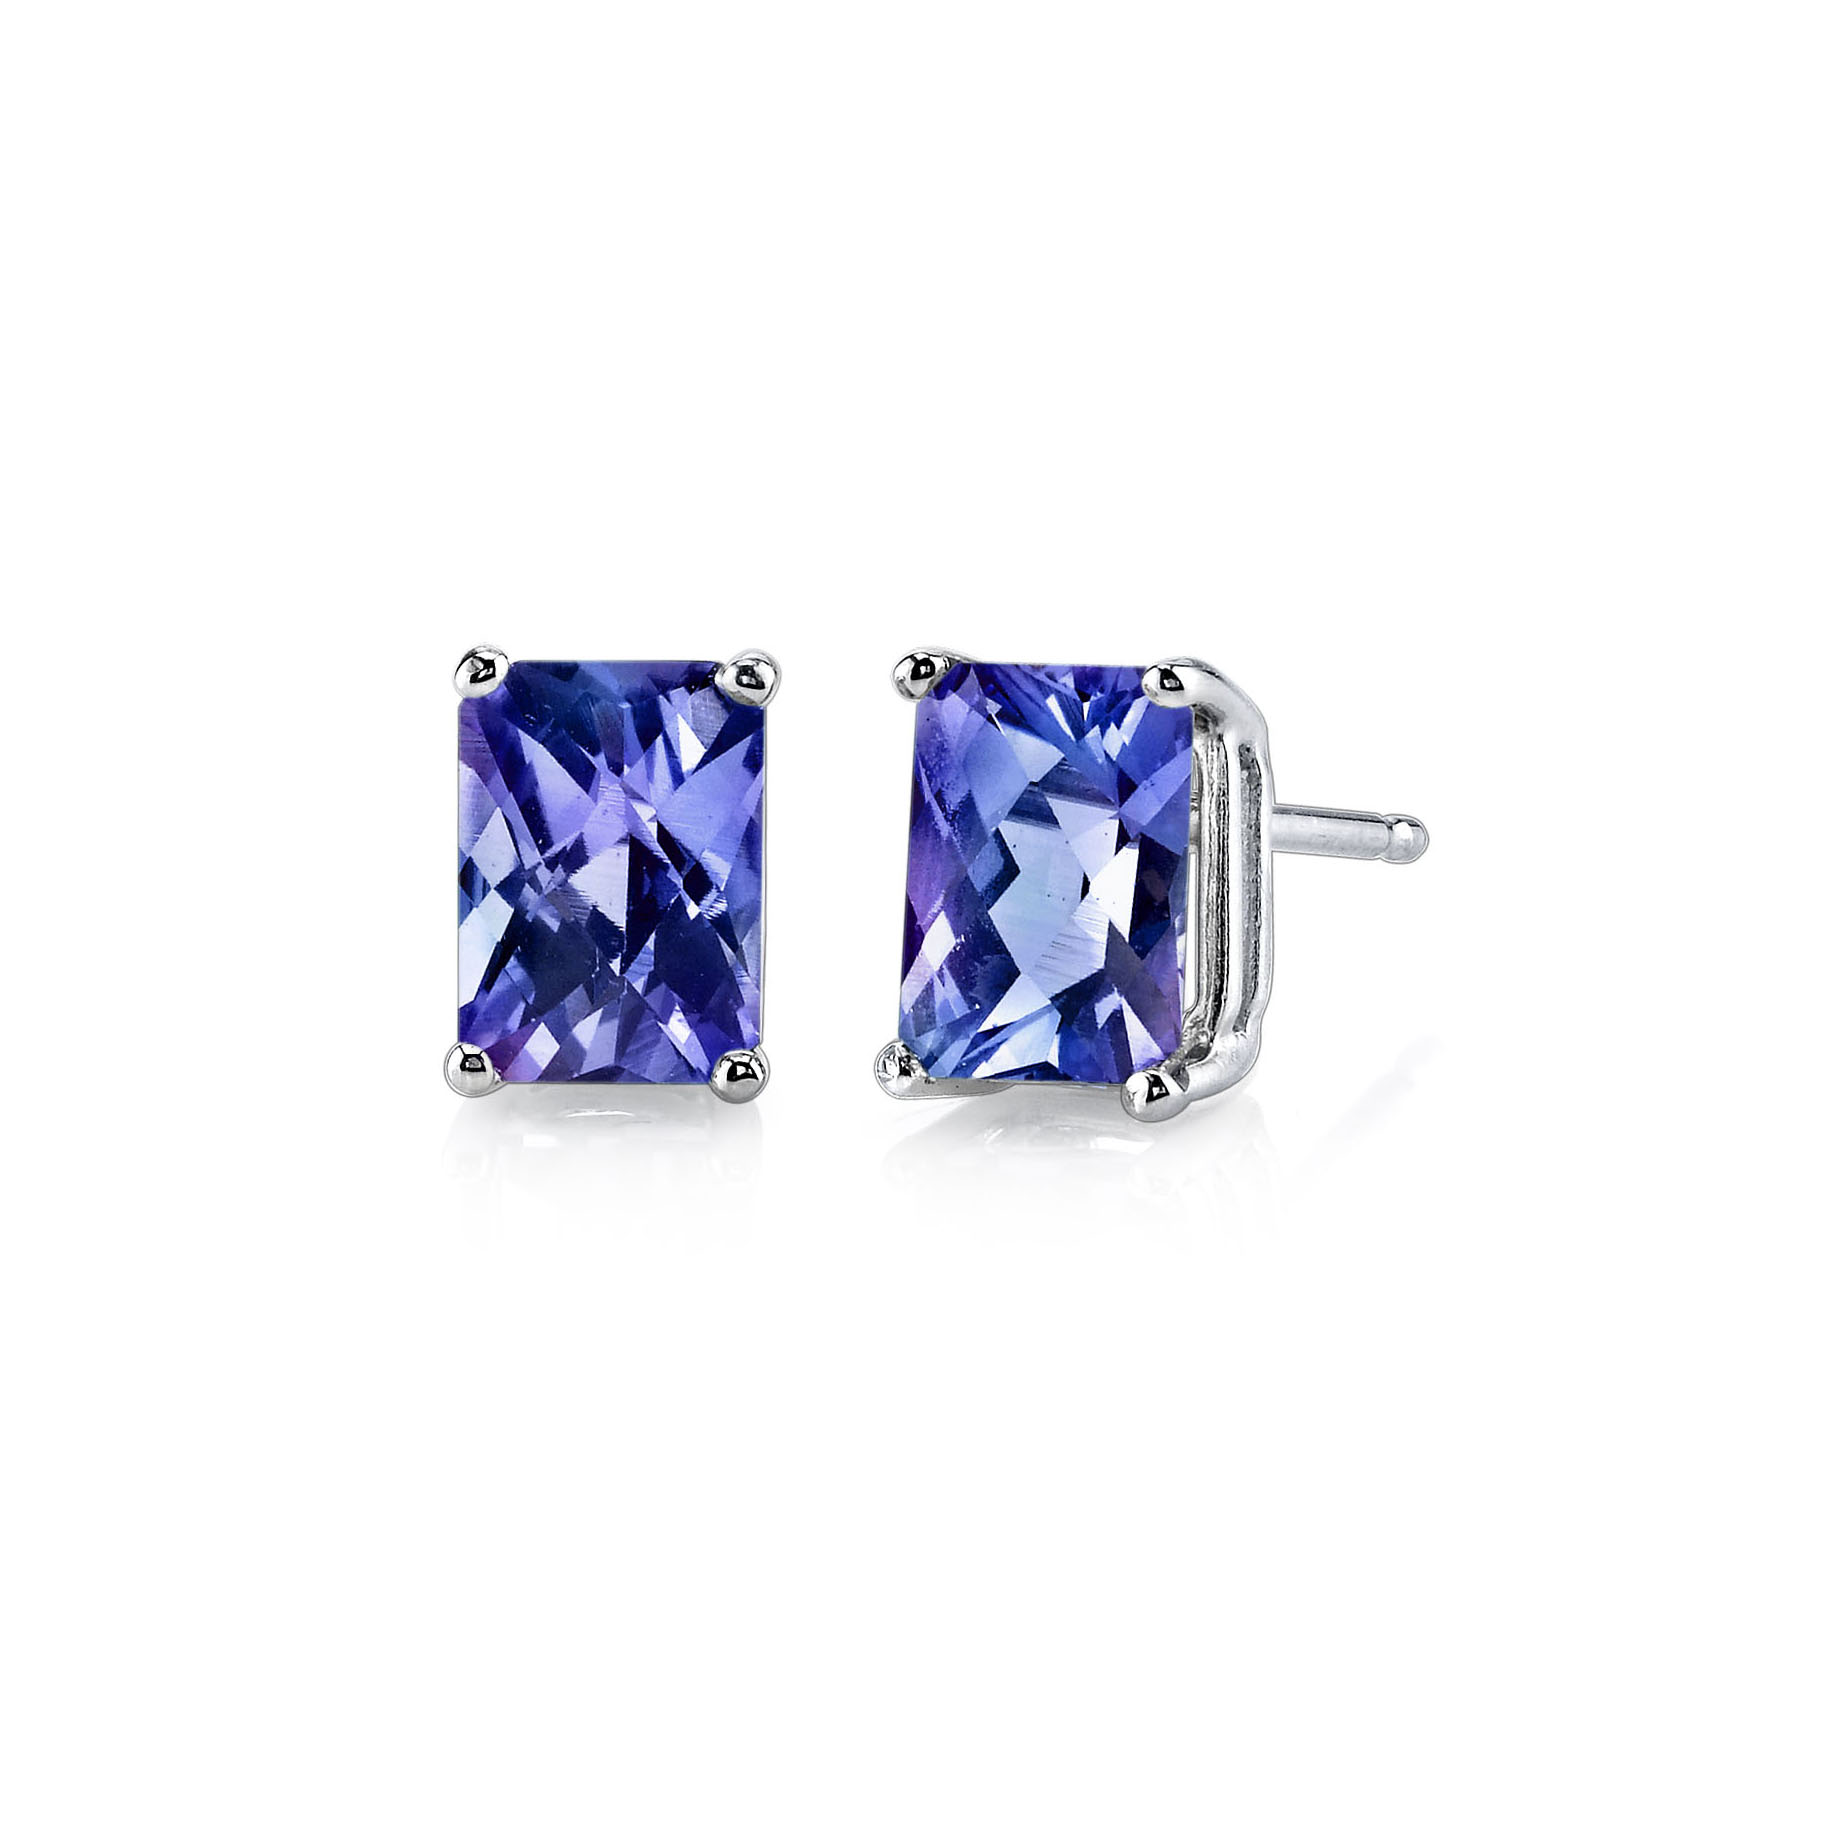 Alexandrite Stud Earrings In 9ct White Gold